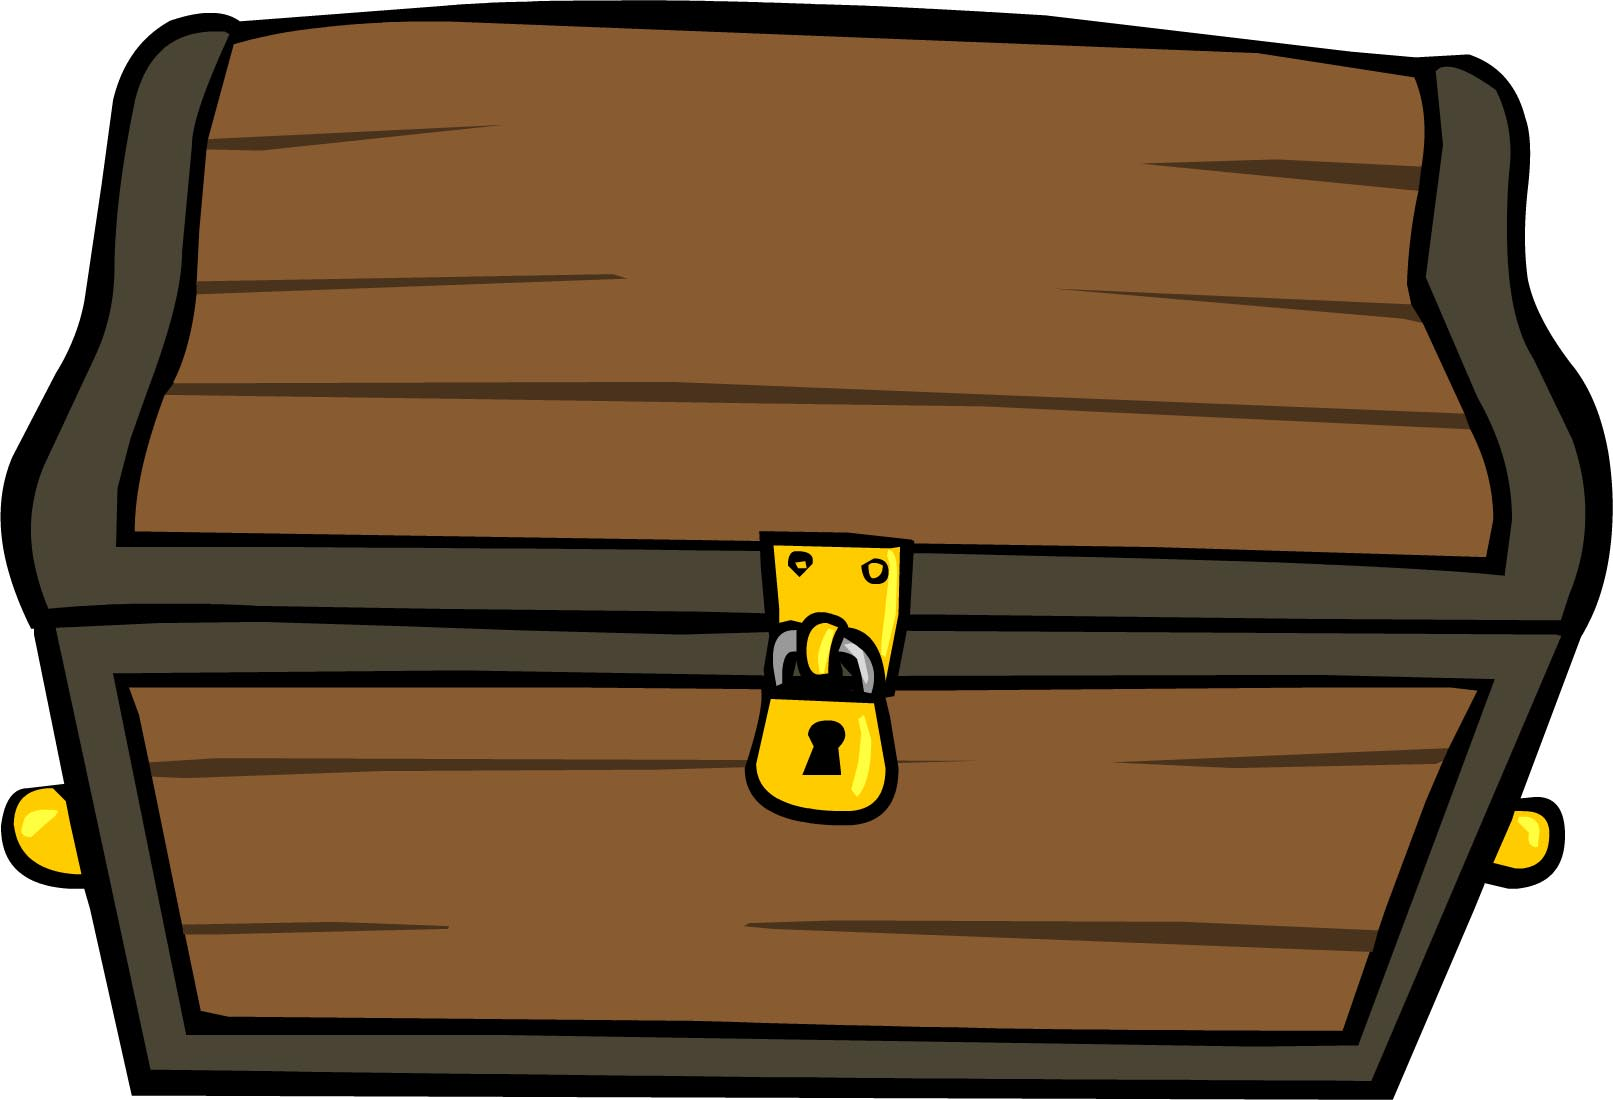 Treasure Chest Clipart with Lock.